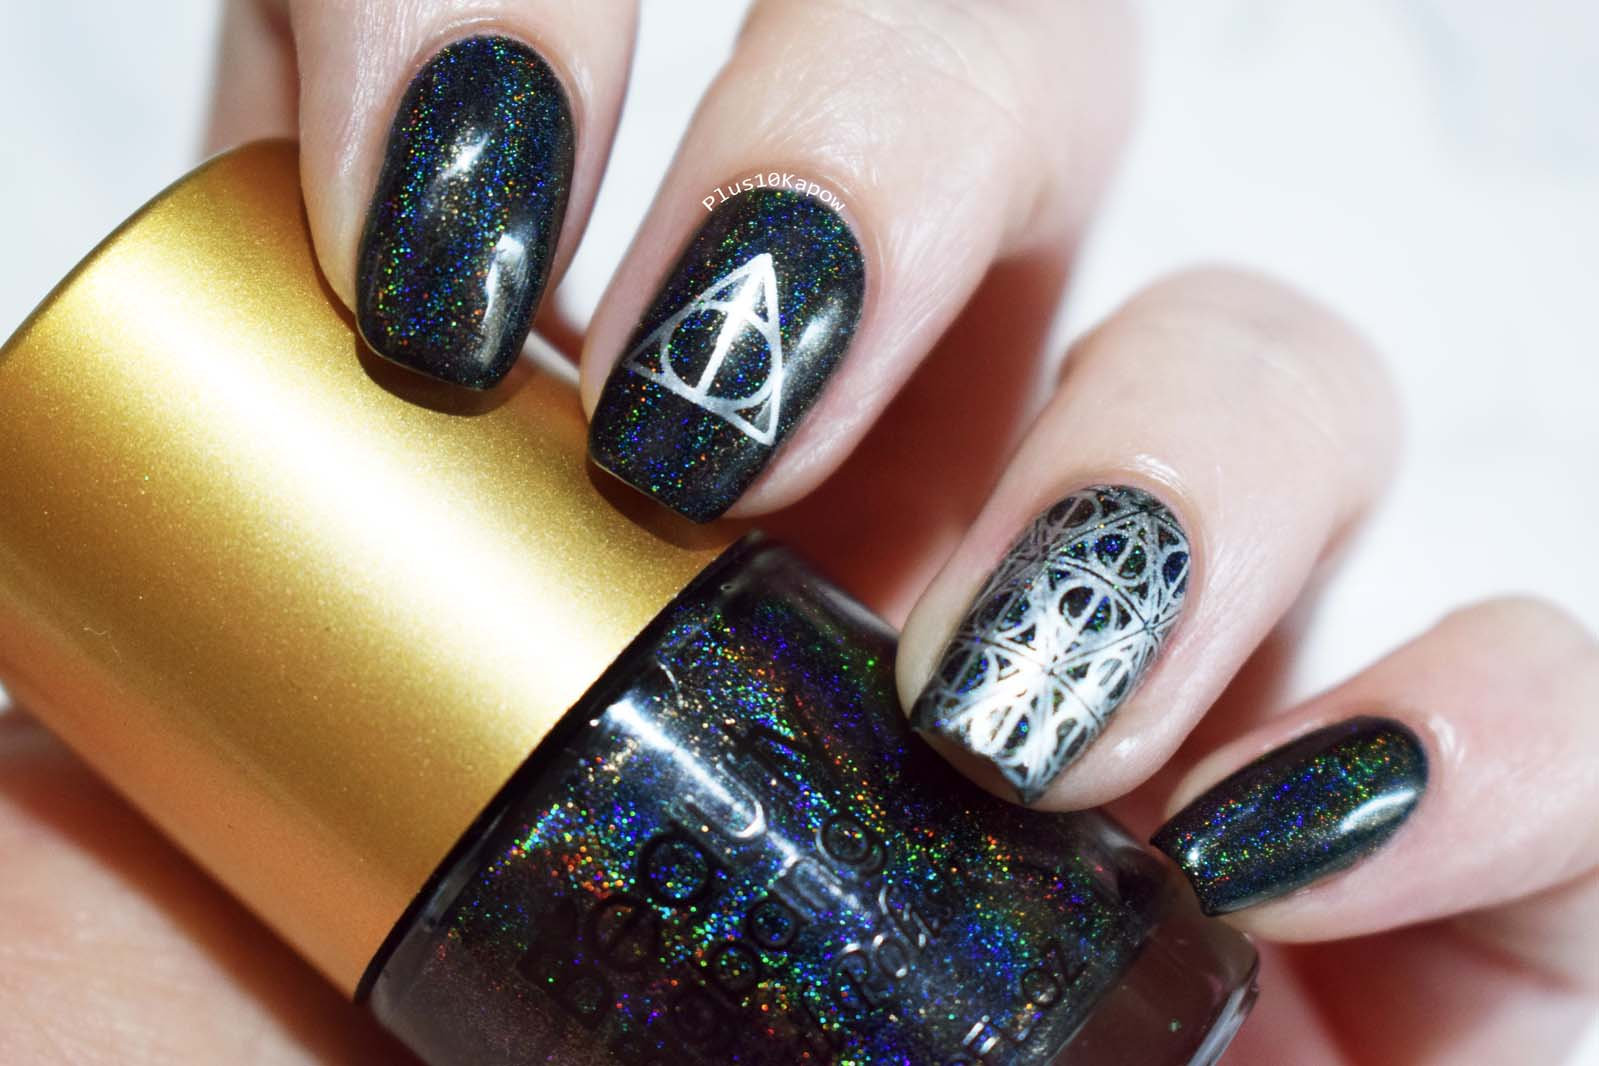 Plus10Kapow: Harry Potter and the Deathly Hallows Nails